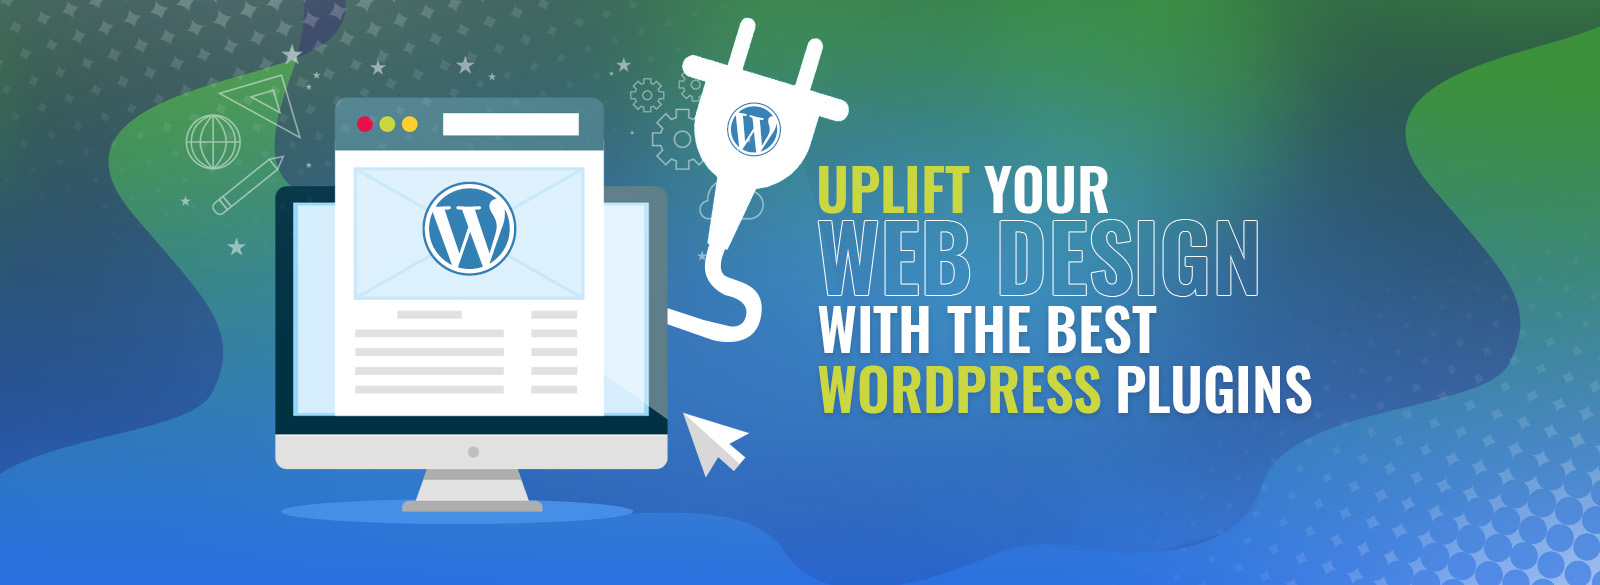 Uplift Your Web Design With the Best WordPress Plugins